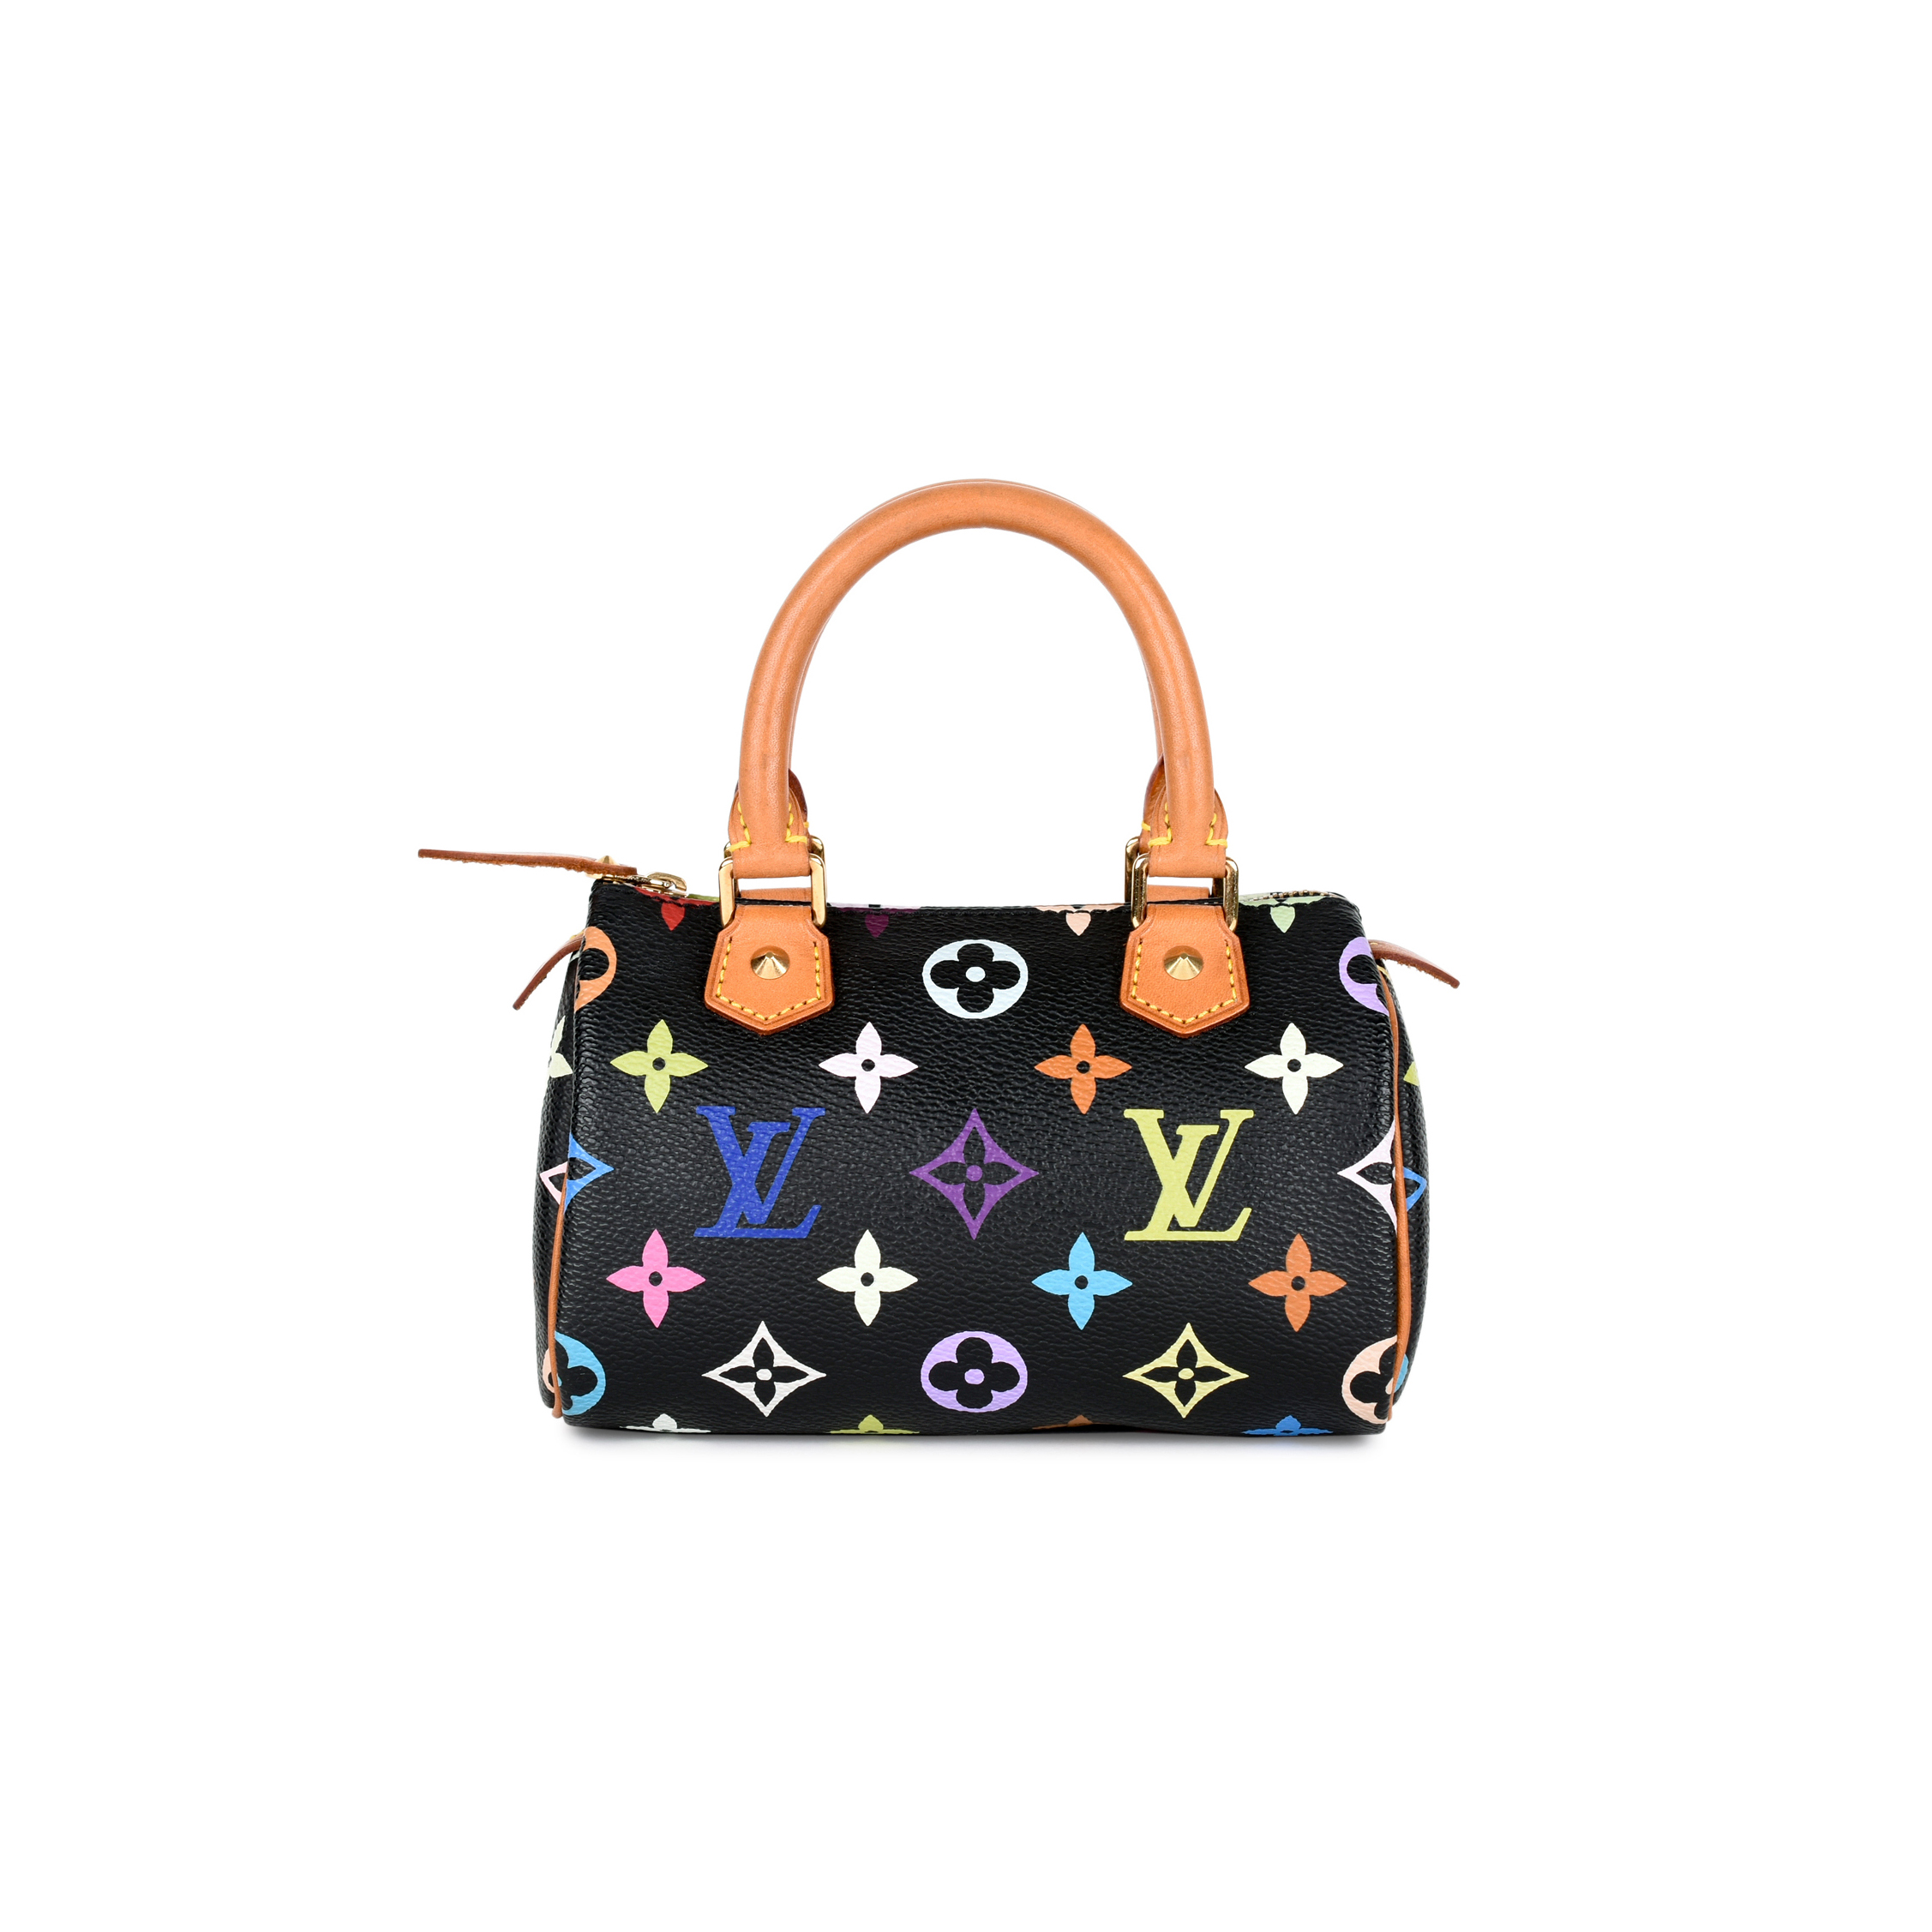 f729021b92b Authentic Second Hand Louis Vuitton Multicolore Mini Sac HL Speedy  (PSS-034-00016)